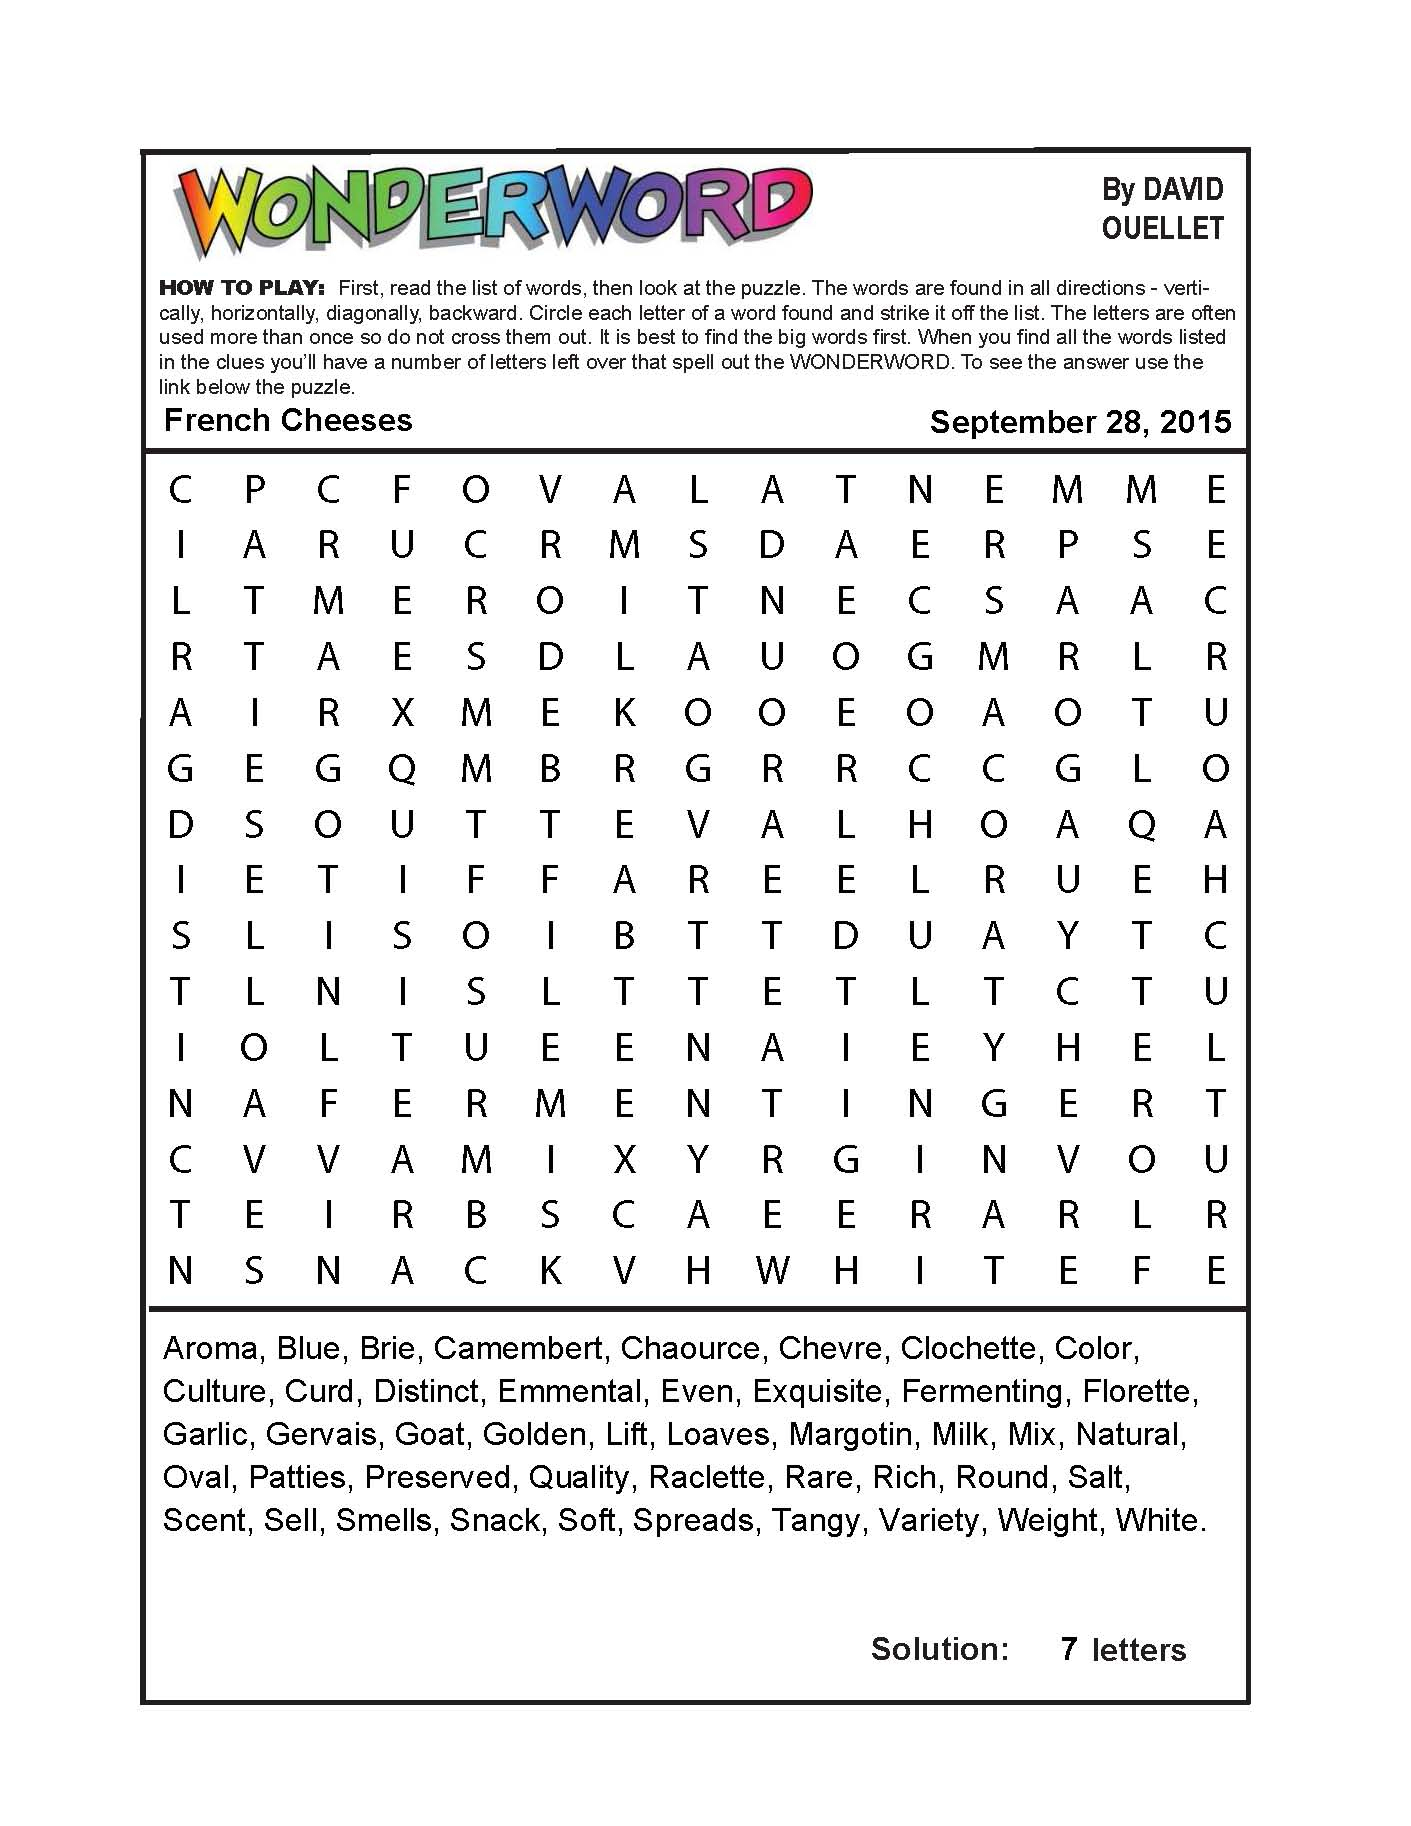 French Cheeses - Printable French Puzzle